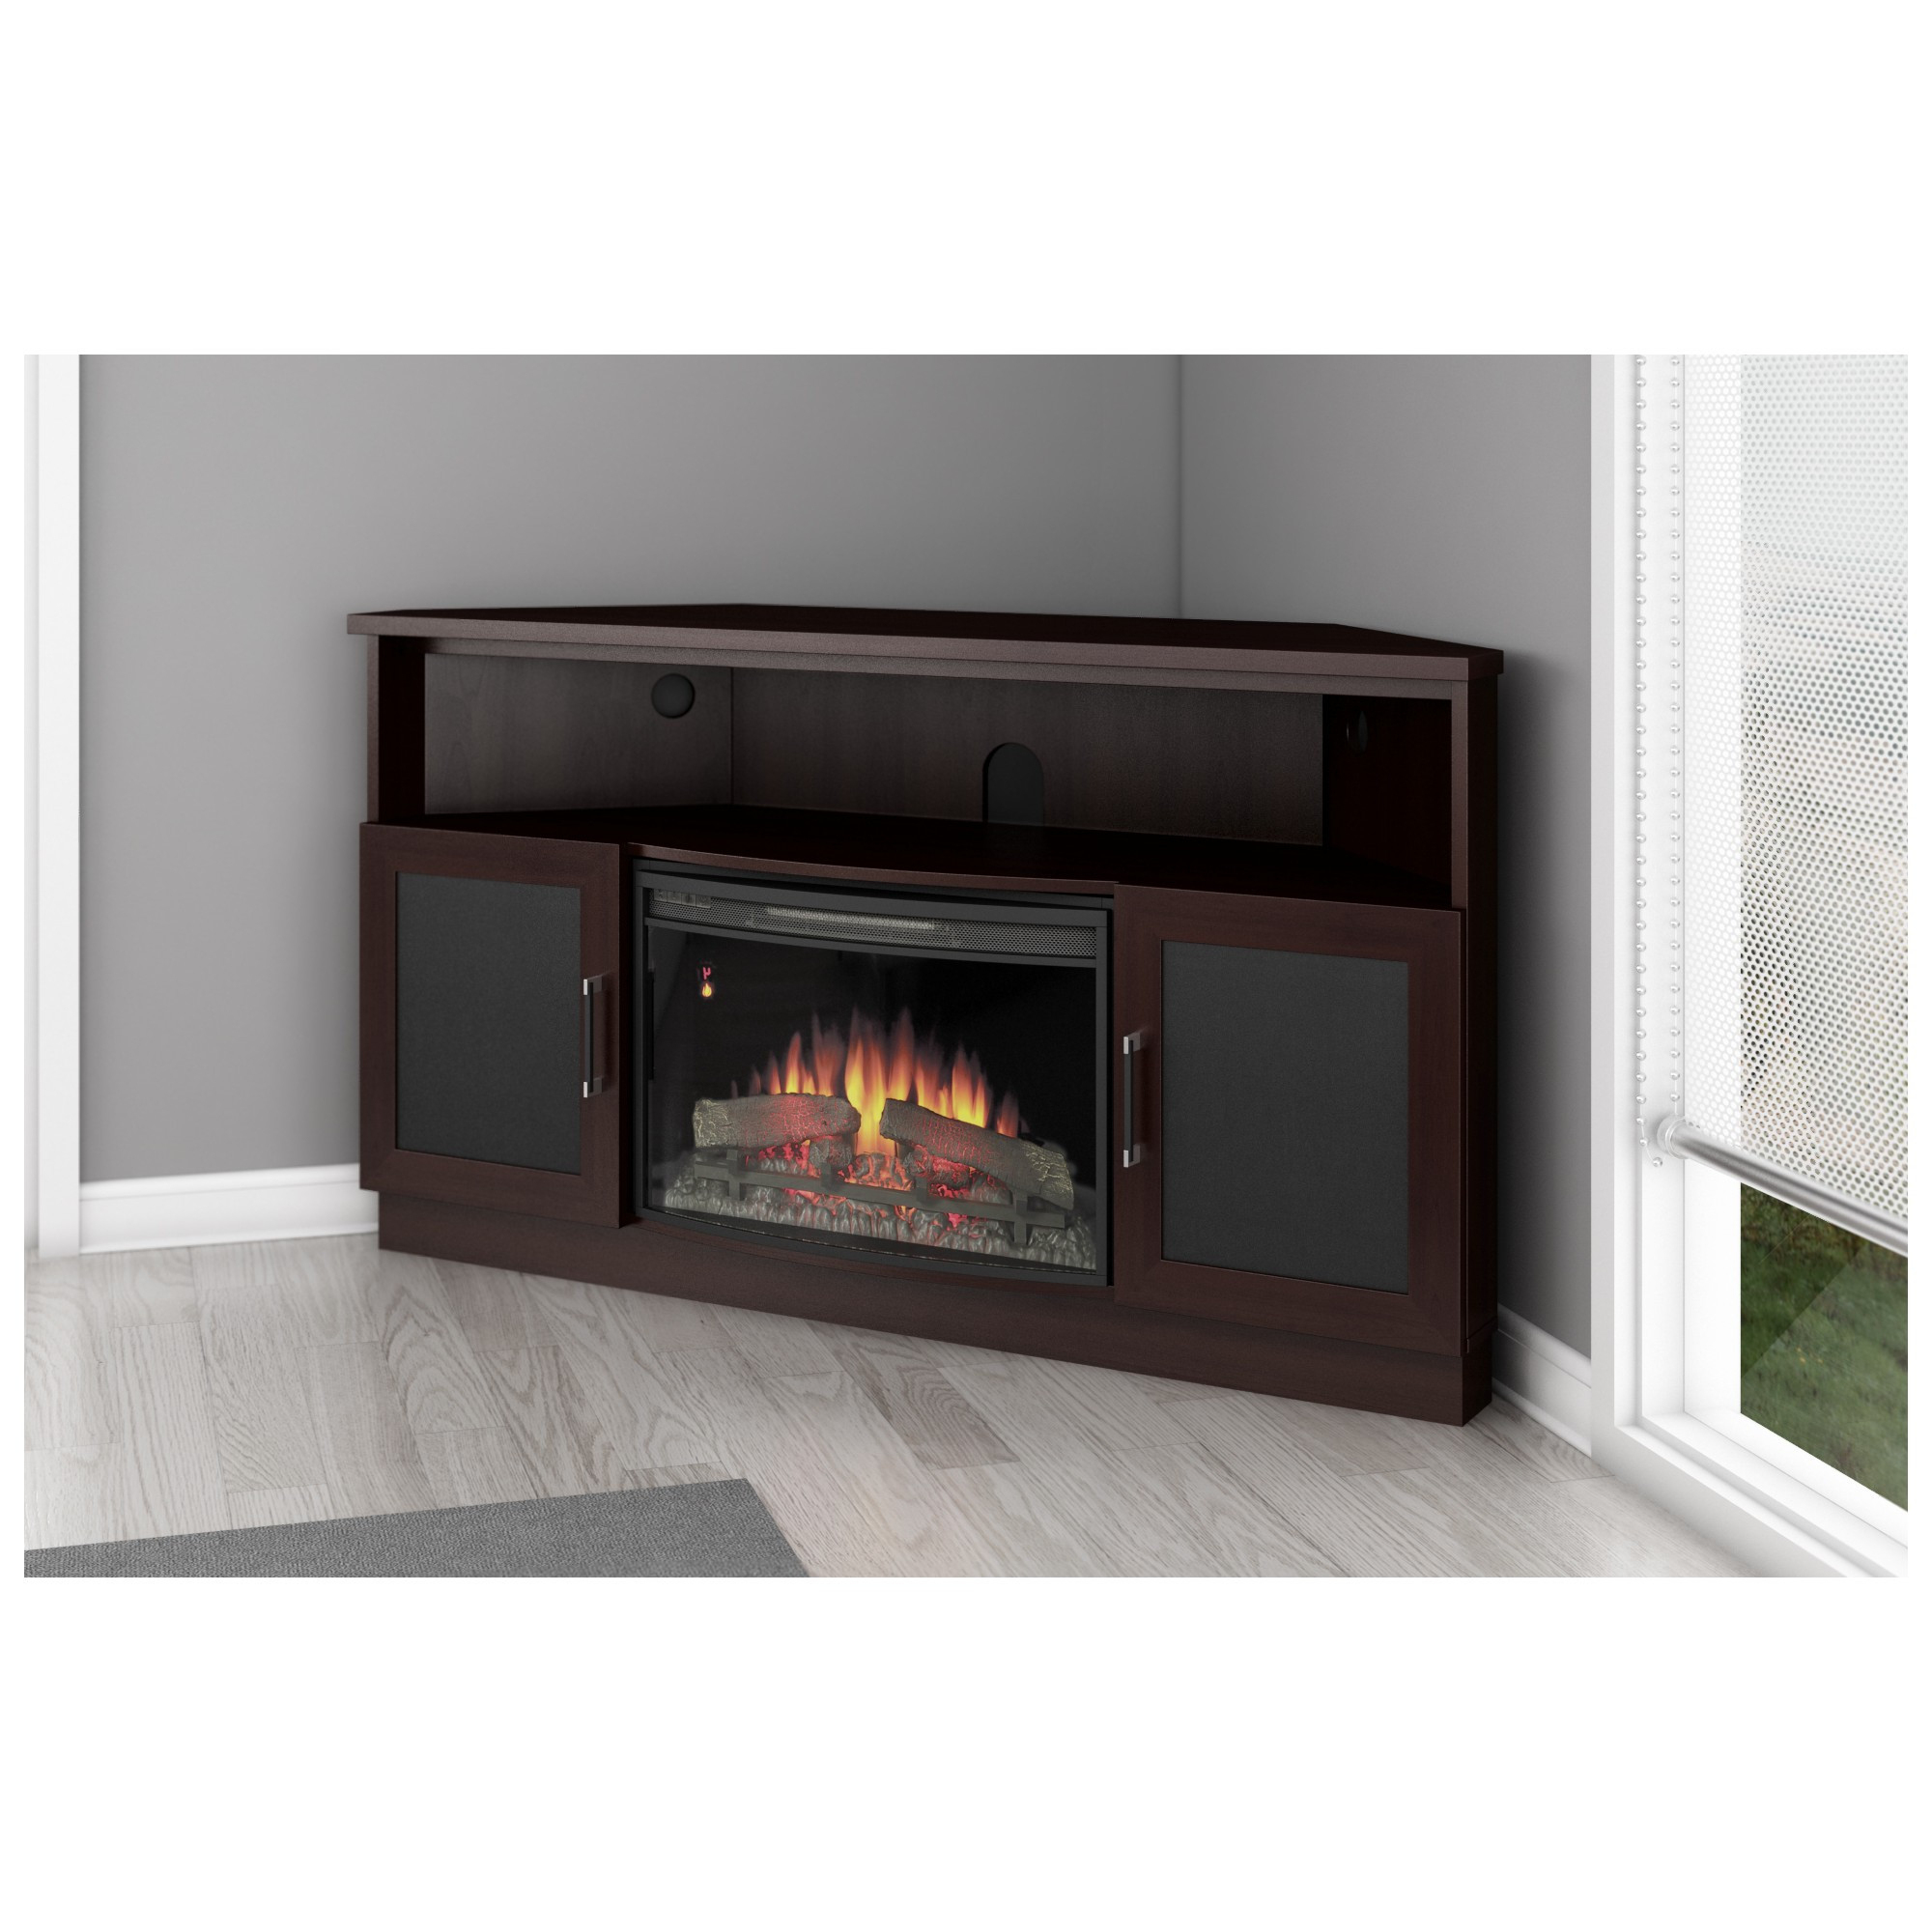 Corner 60 Inch Tv Stands Throughout Trendy Corner Fireplace Tv Stand For 60 Inch Tv – Getproductsofic (View 4 of 20)